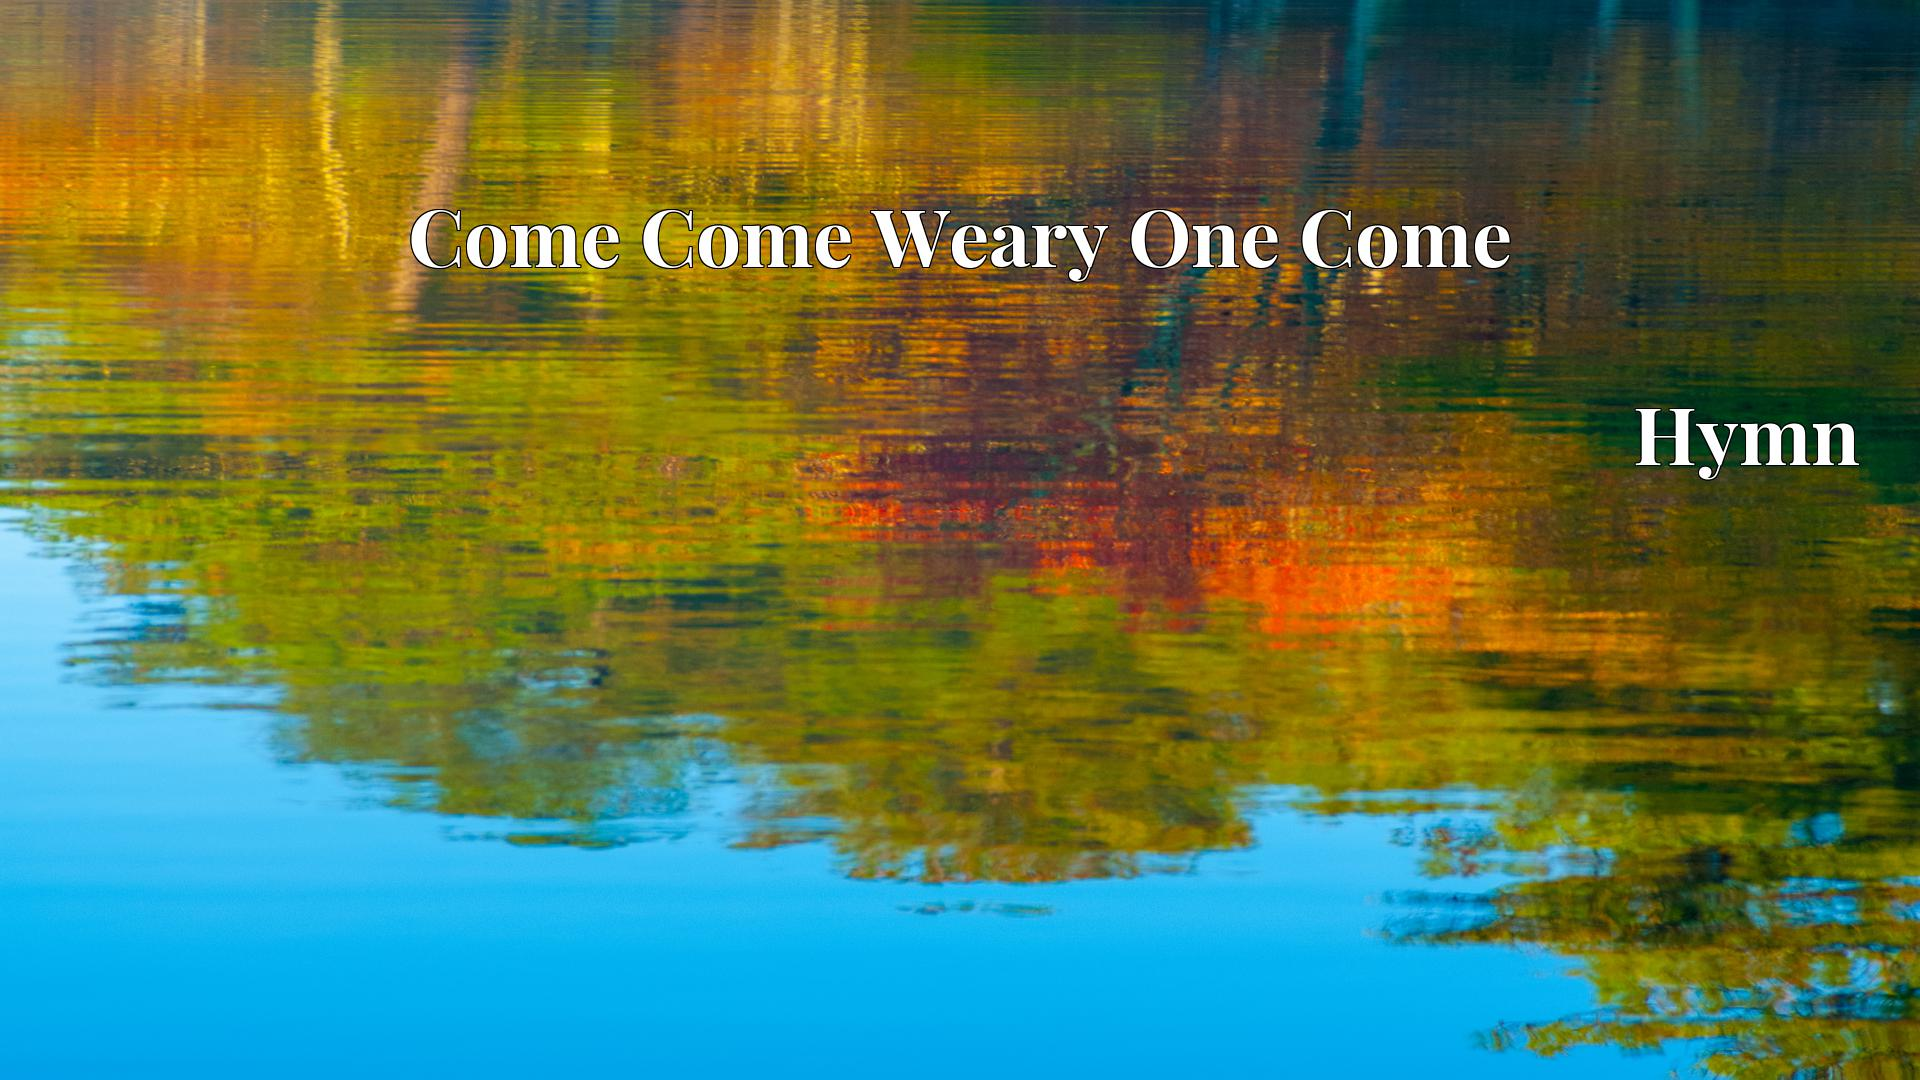 Come Come Weary One Come - Hymn